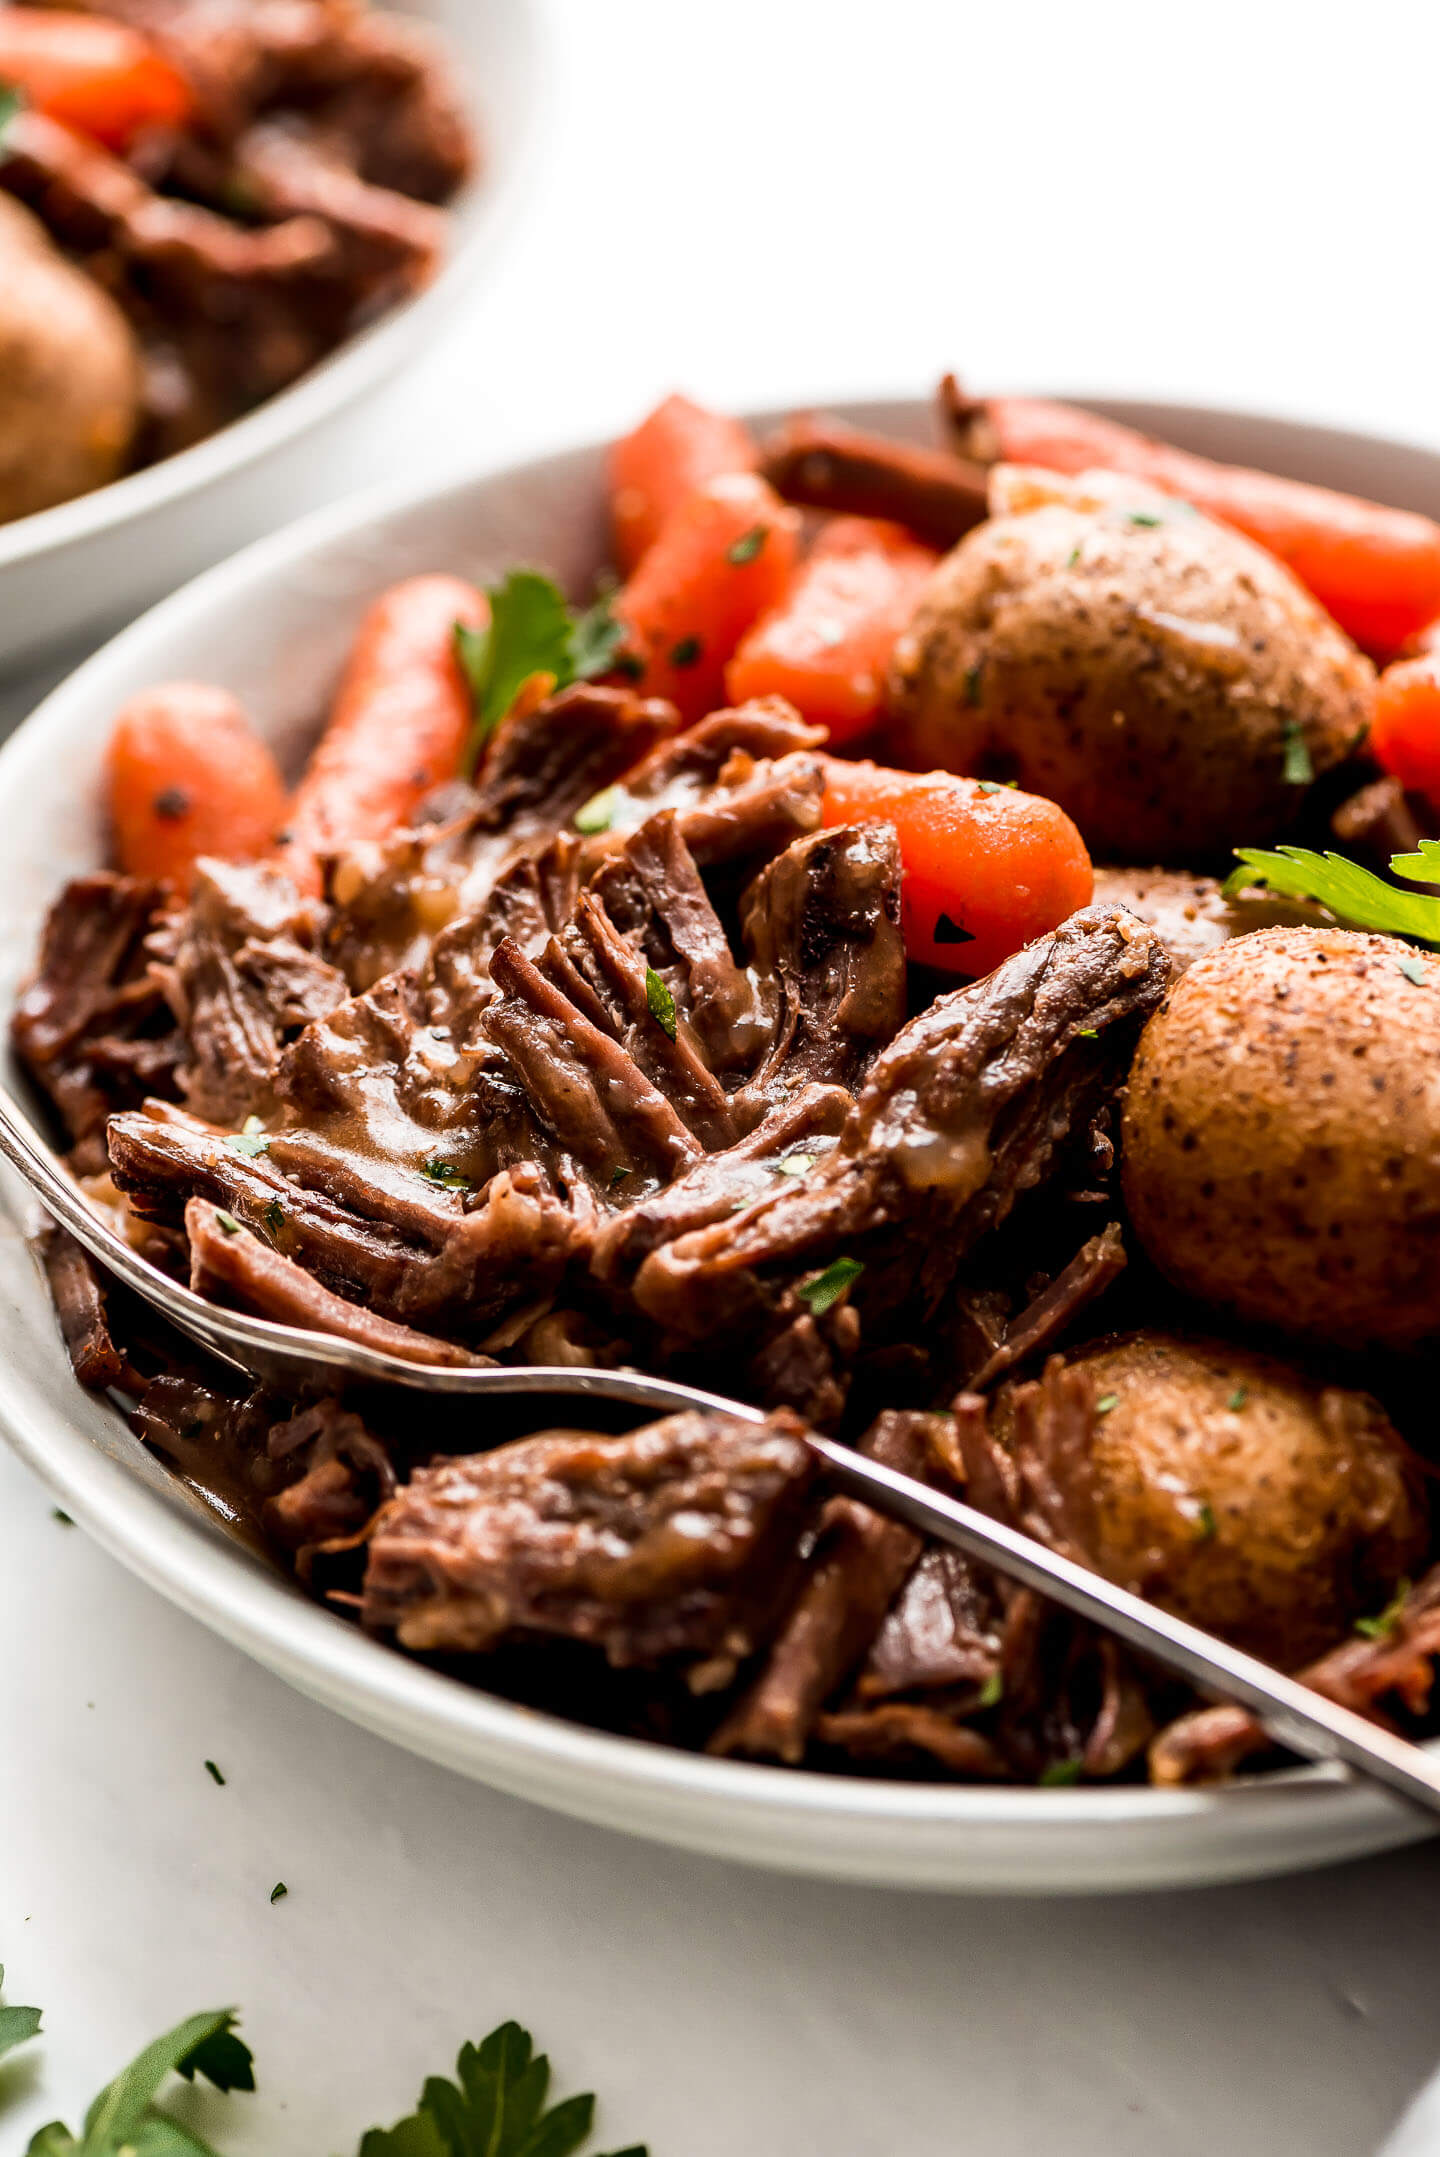 Pot Roast in a bowl with potatoes, and carrots, and drizzled with brown gravy.